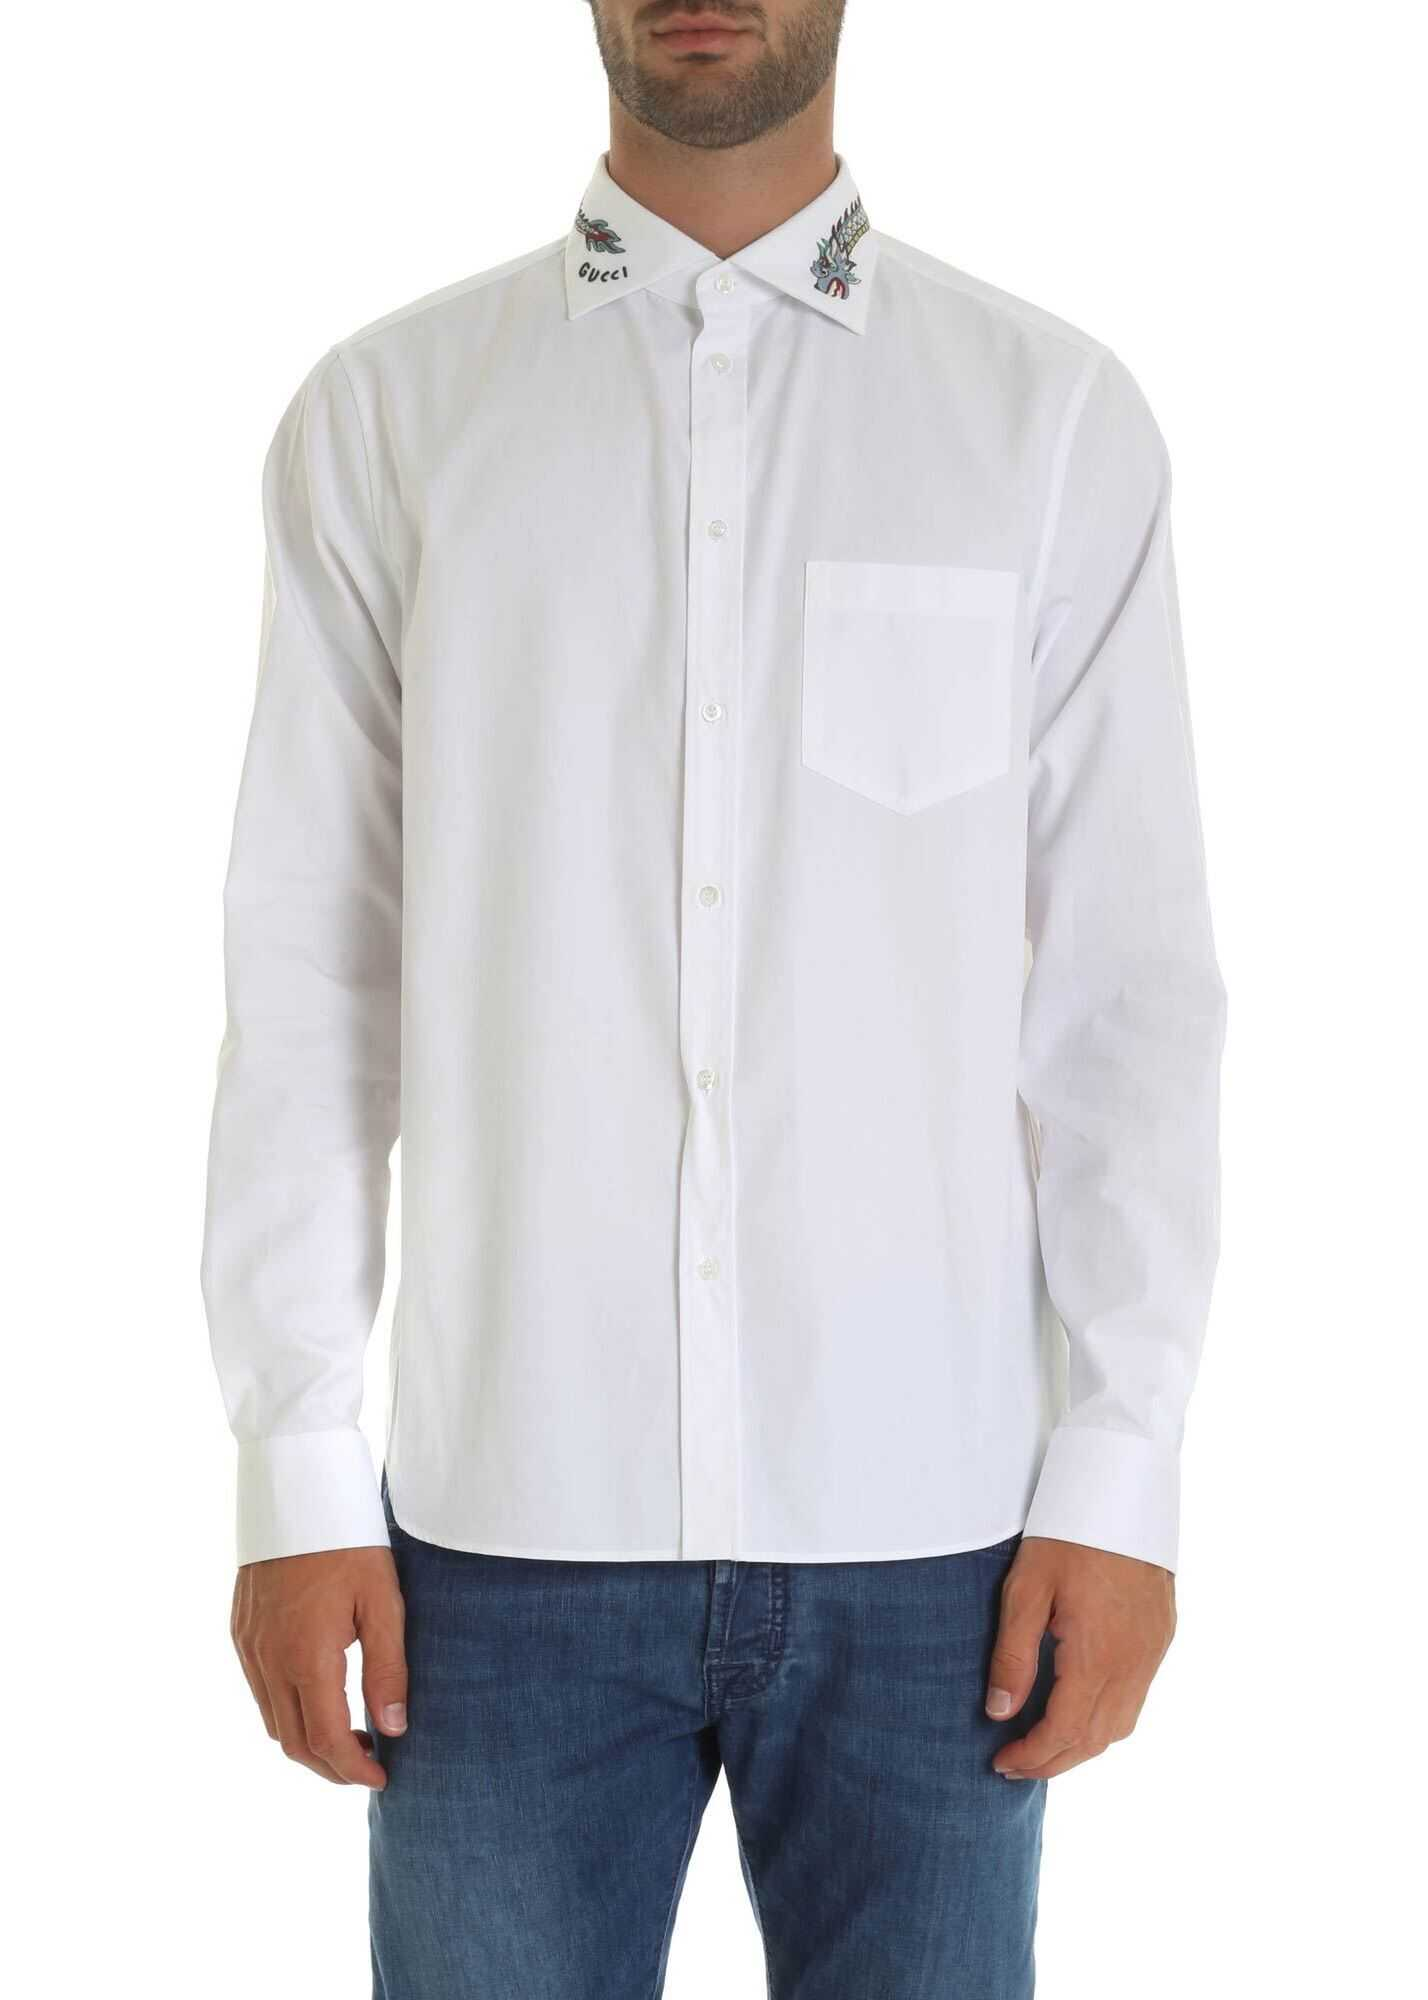 Gucci Shirt In White With Embroidered Collar White